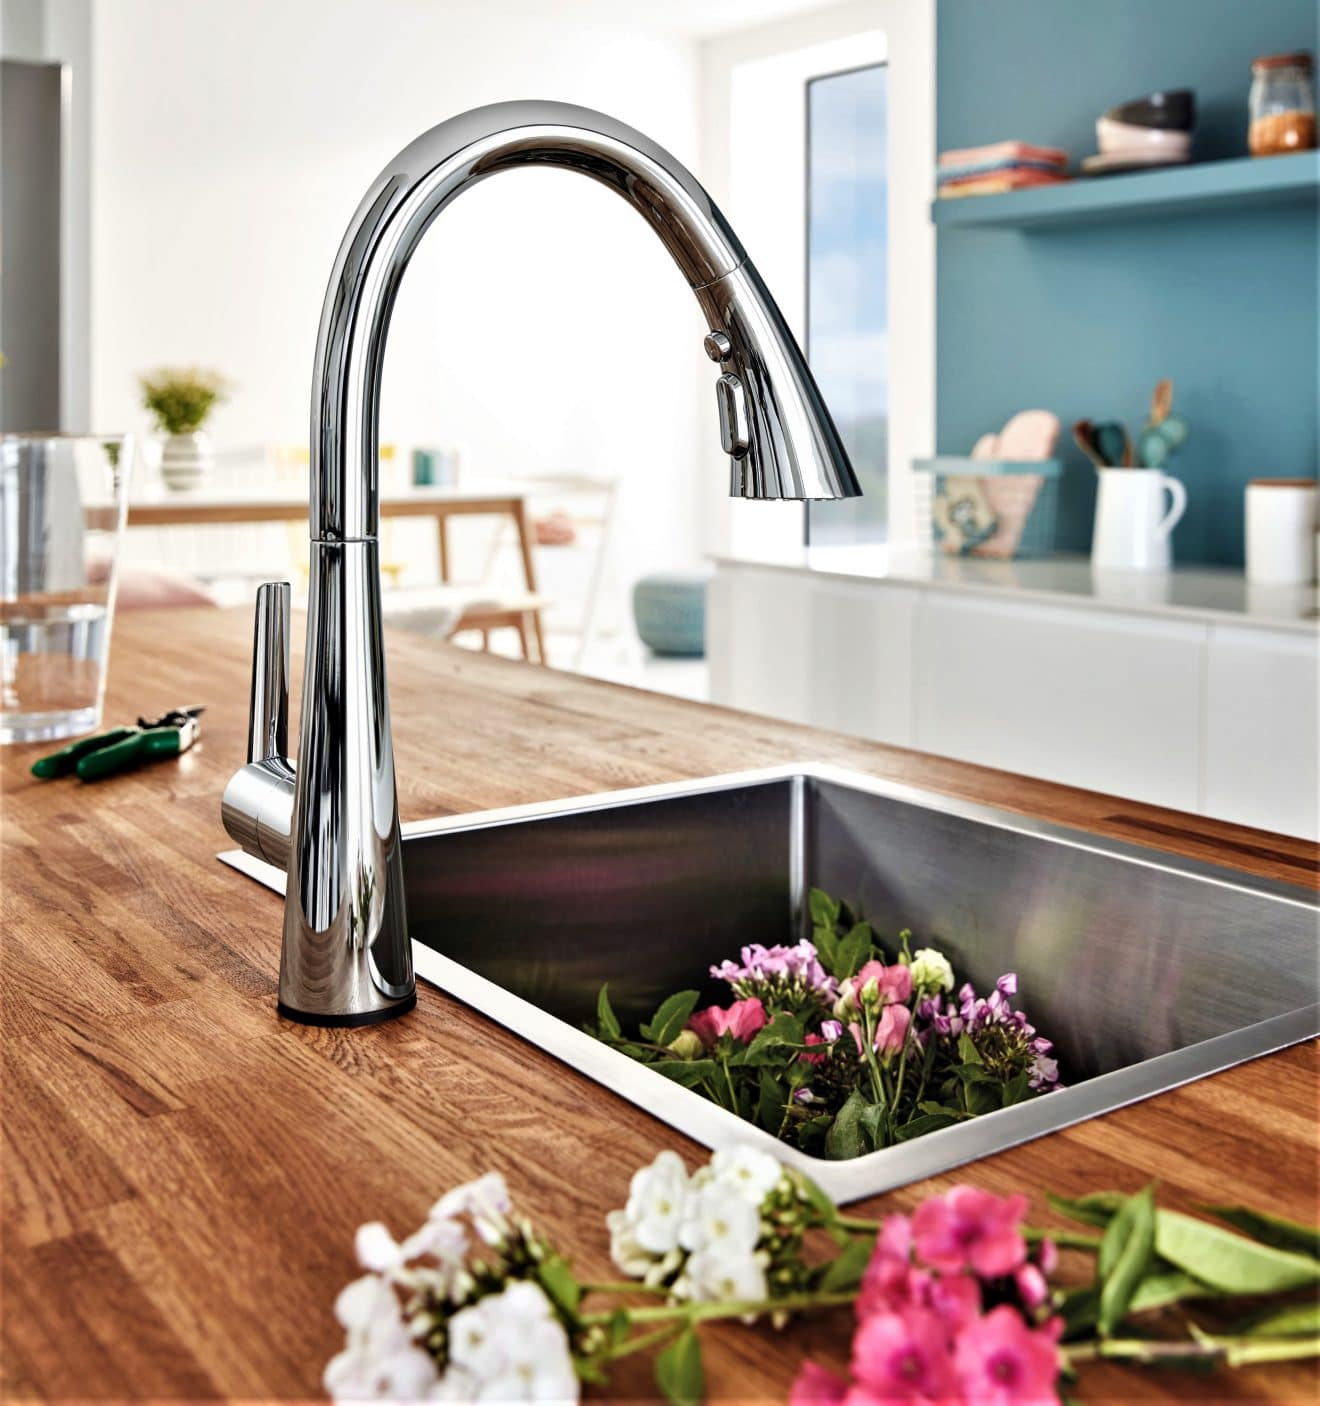 Zedra Kitchen Faucet by GROHE